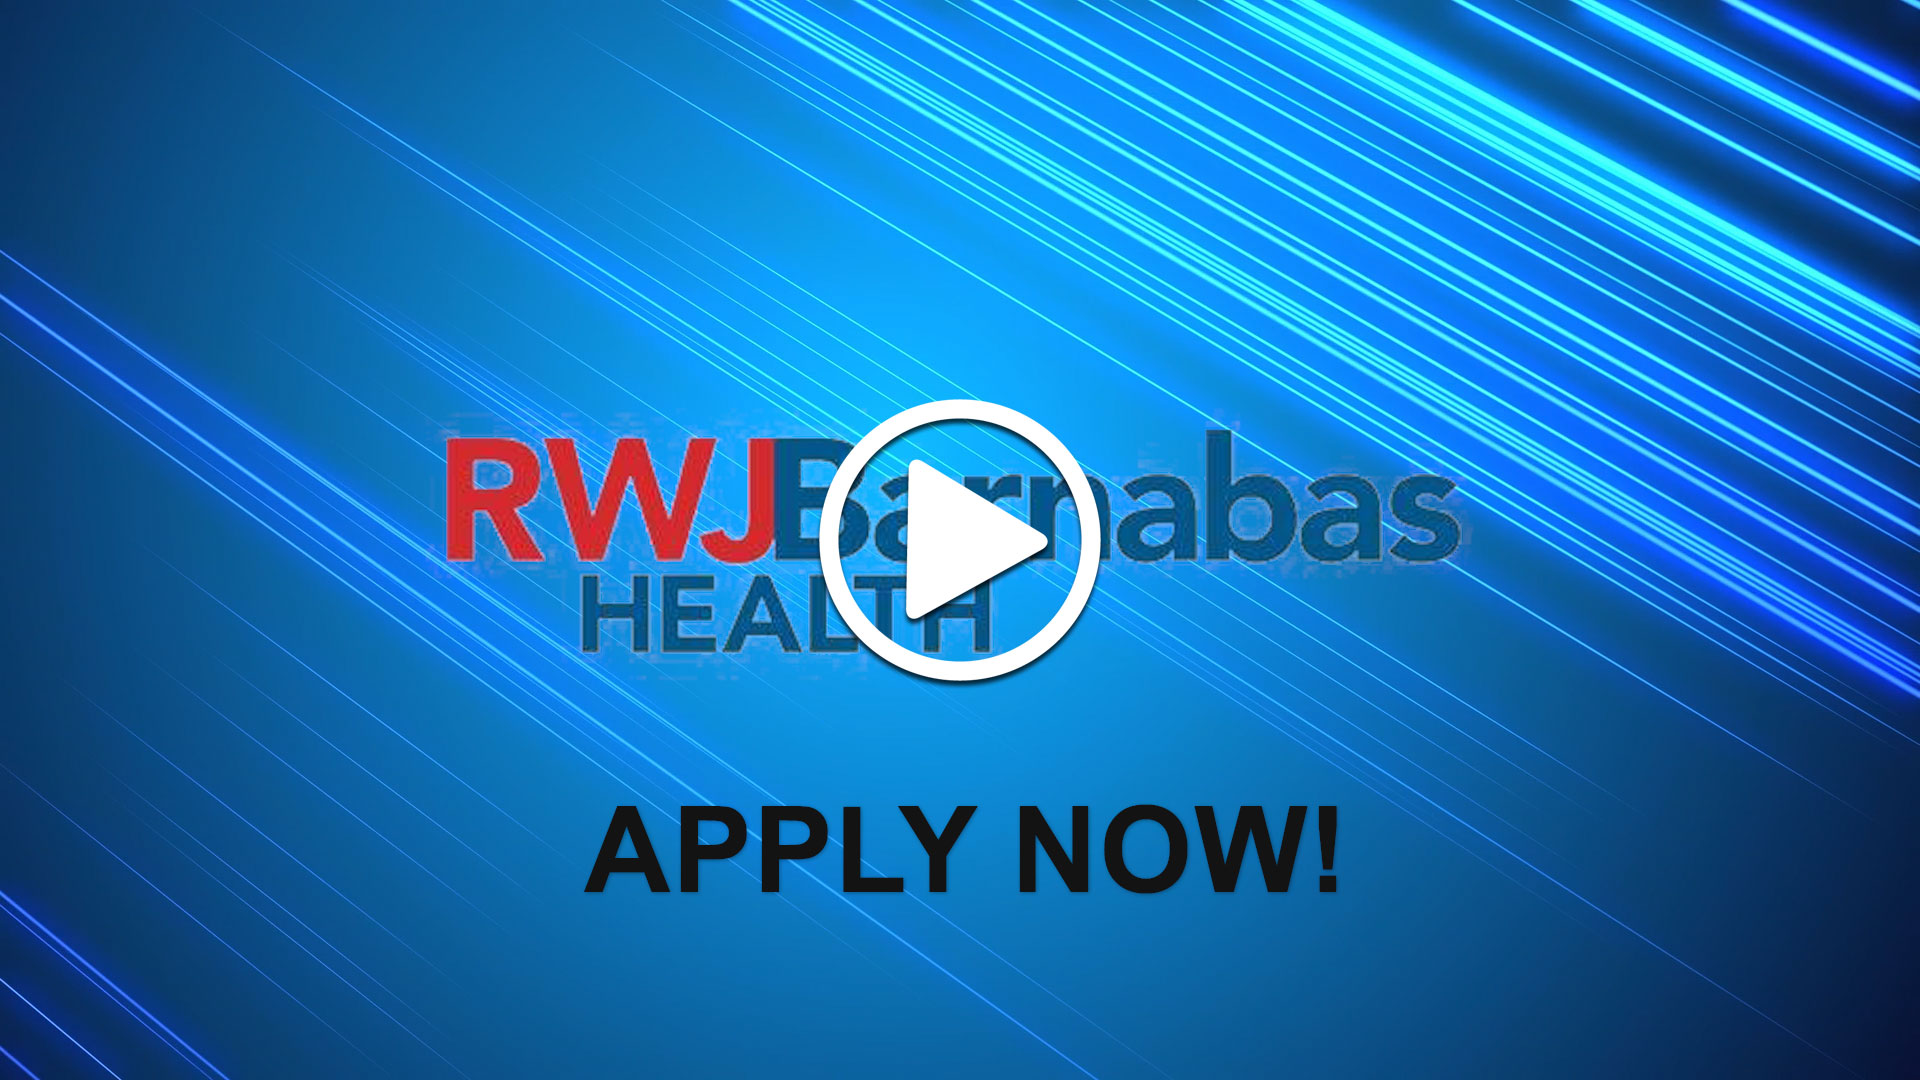 Watch our careers video for available job opening RWJBarnabas Health is Seeking an Outpatient C_A Psychiatrist for Employment in Newark NJ in Newark, NJ, USA